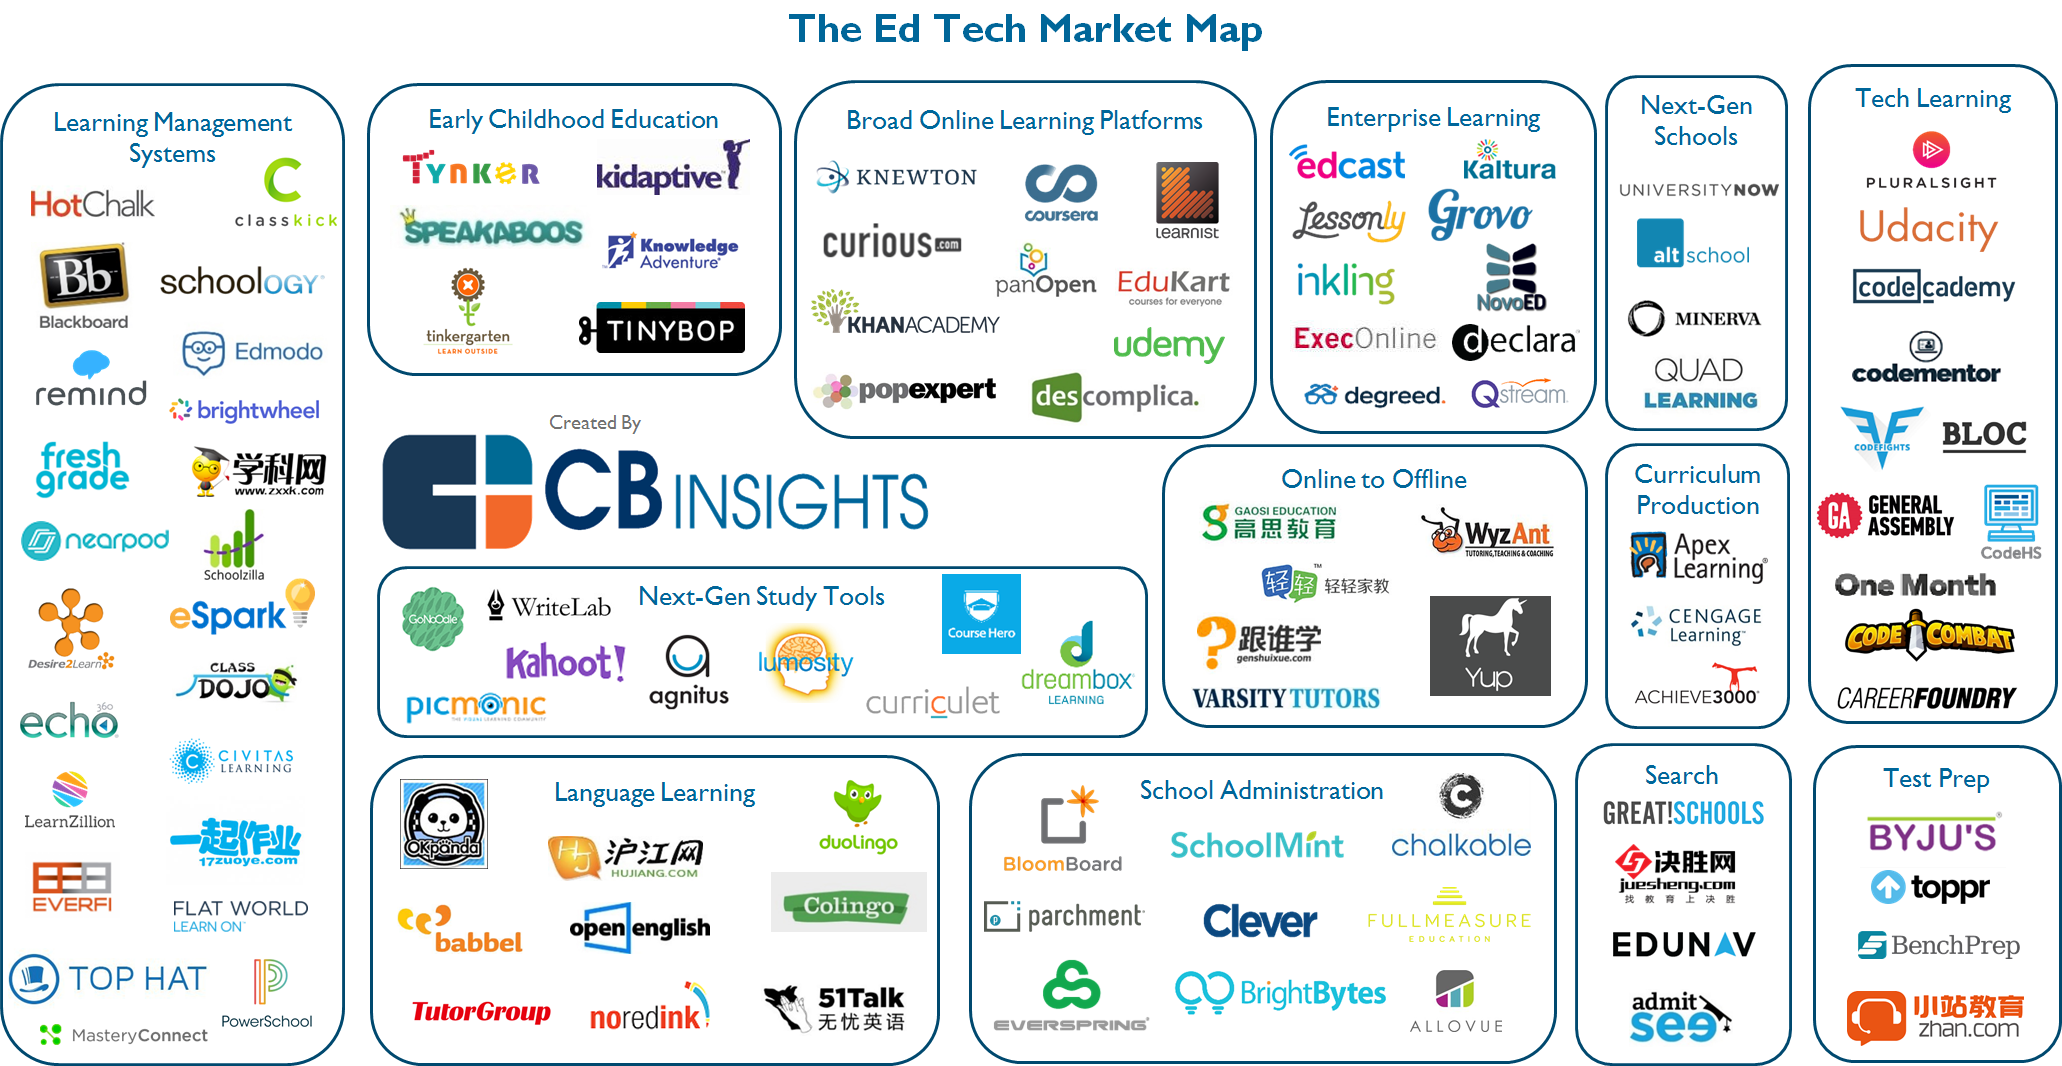 Ed Tech Startups Across Learning Management, Language Teaching, And More